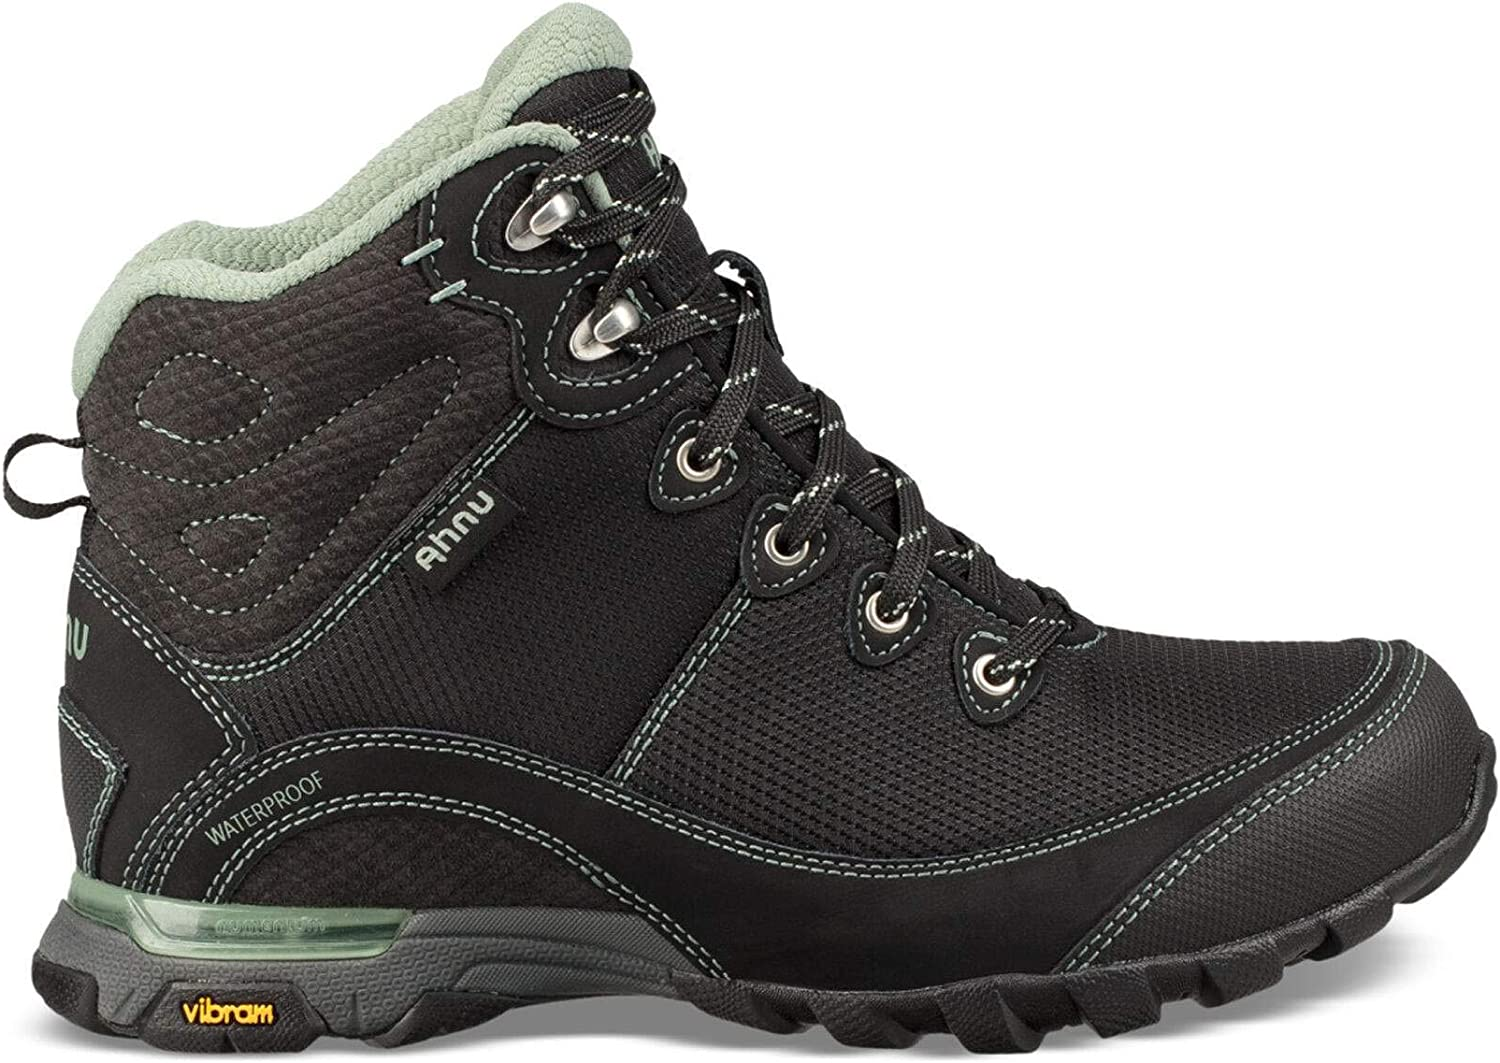 Image of Ahnu Women's W Sugarpine II Waterproof Ripstop Hiking Boot, Black/Green Bay, 11 Medium US Hiking Boots